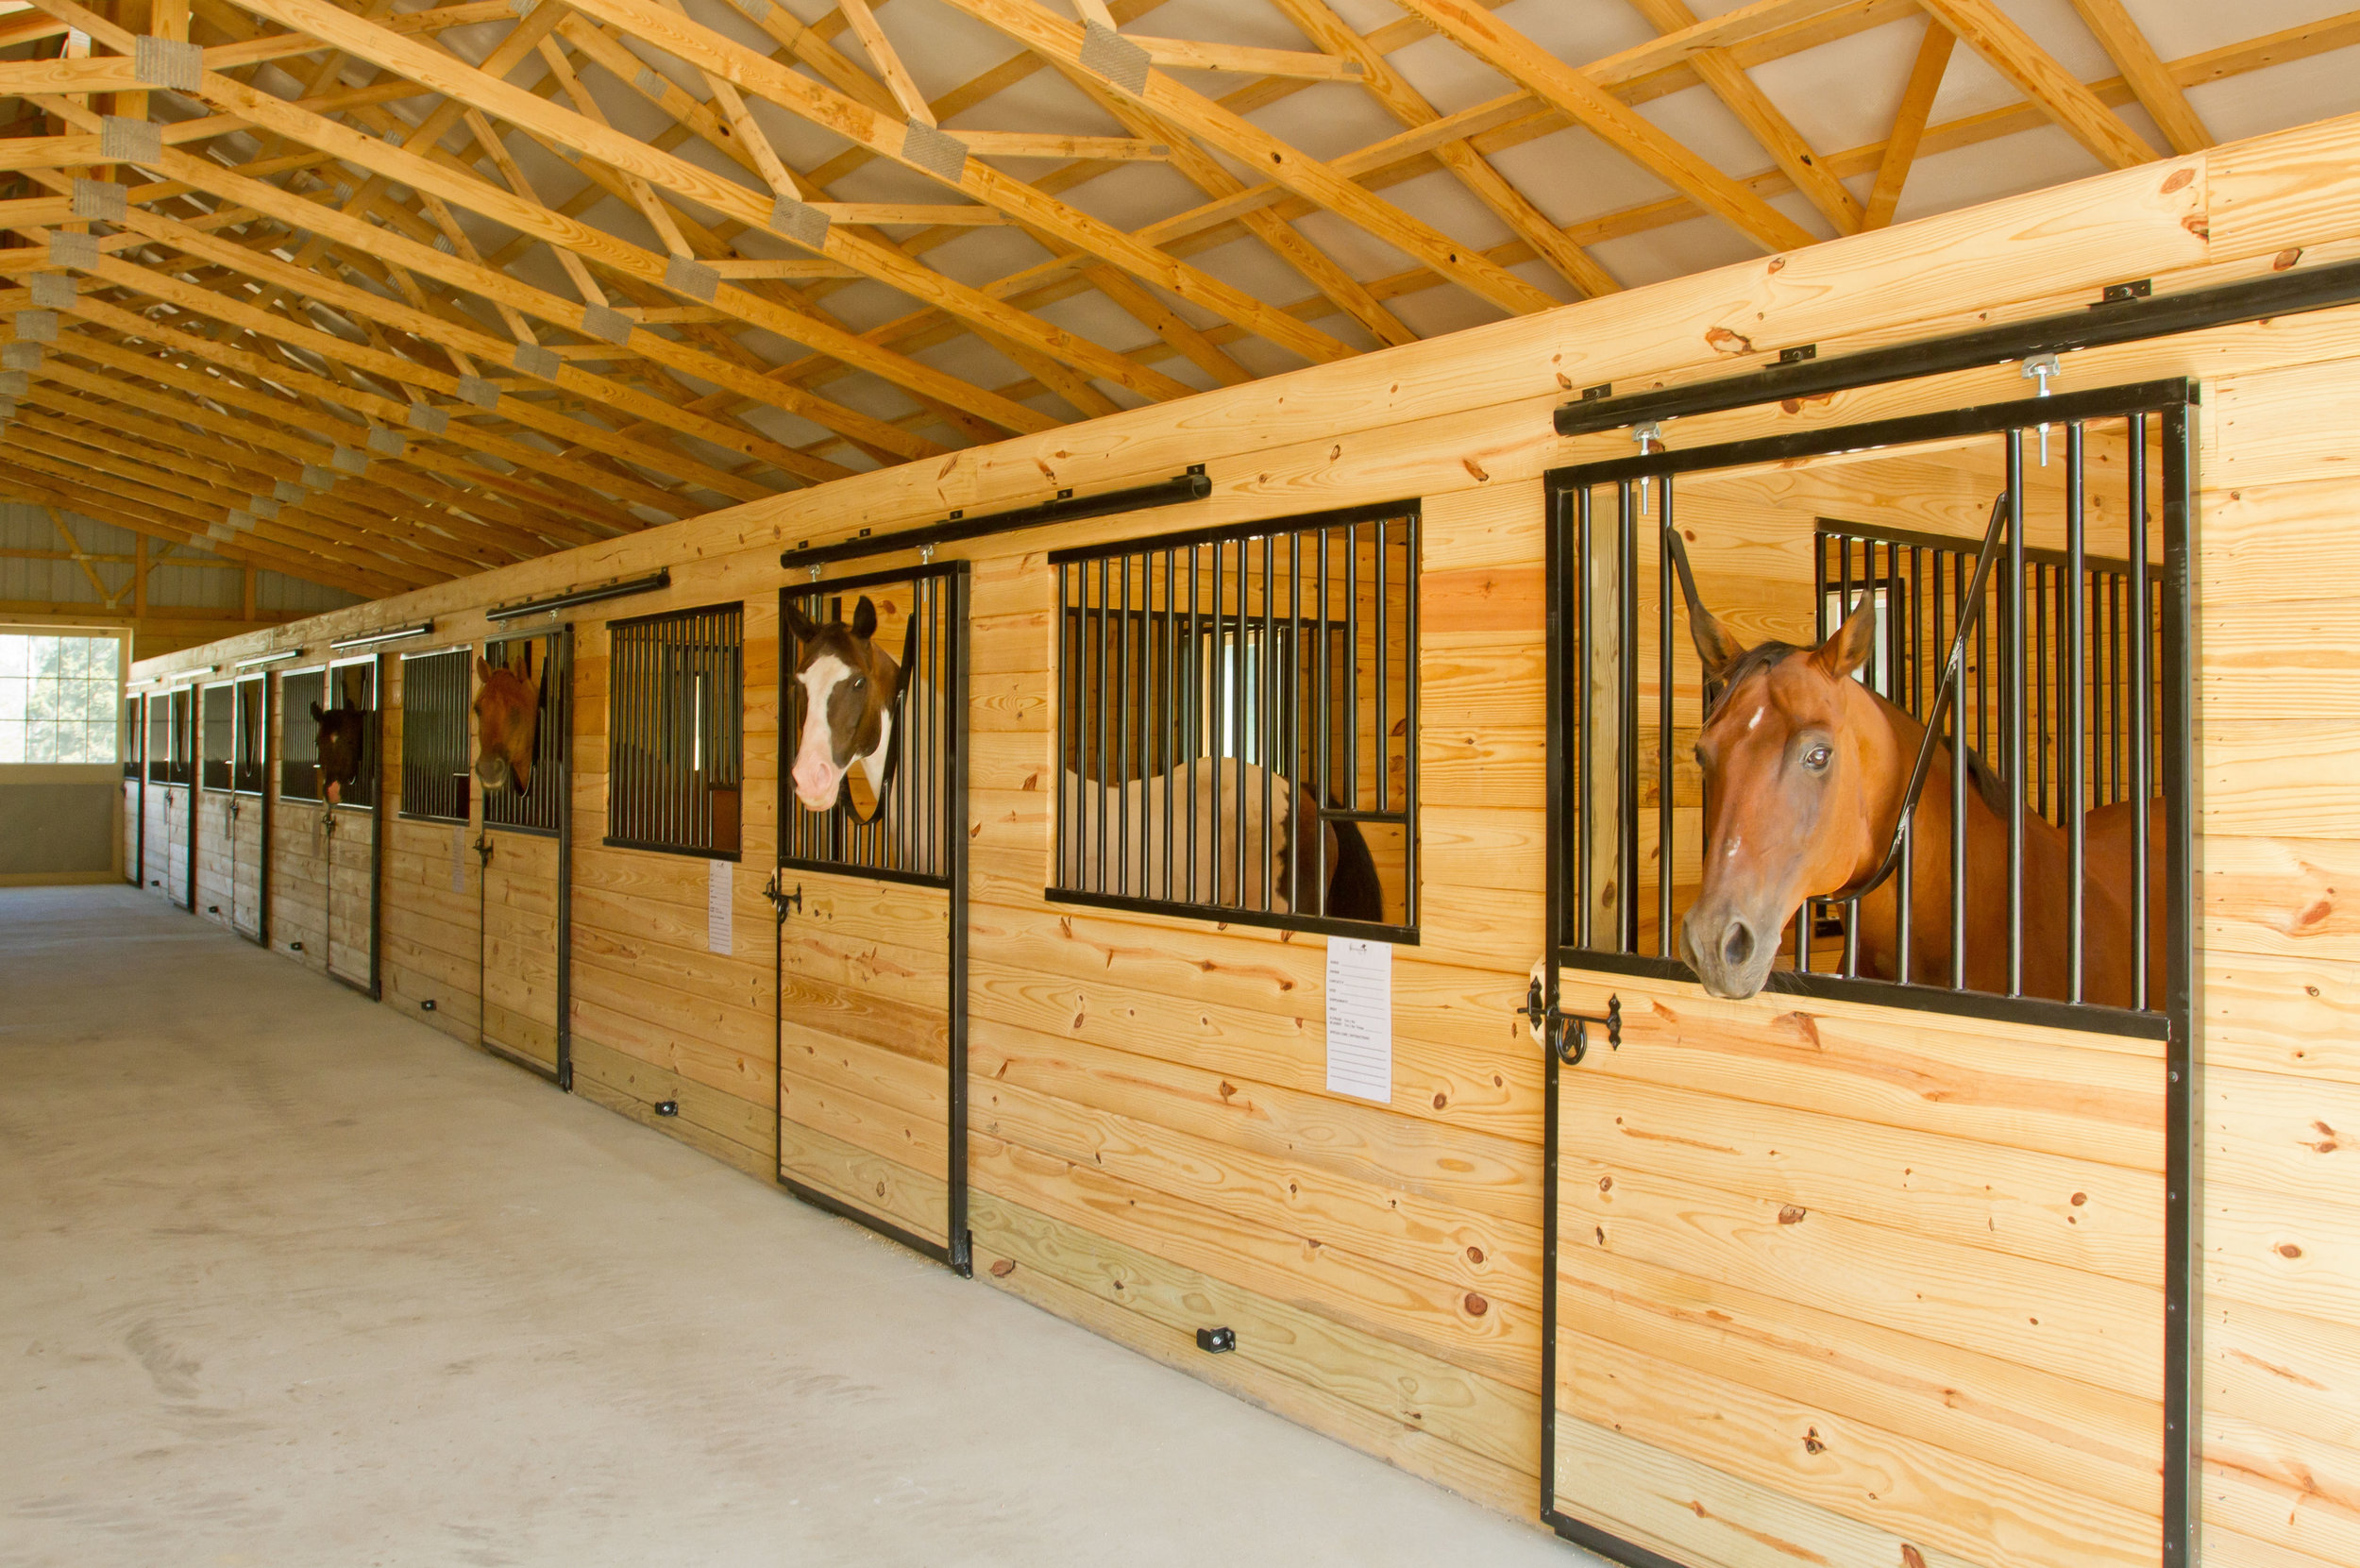 Westbrook Horse Farm - Brian Westbrook founded the Westbrook Horse Farm as a boarding facility which ran for 11 years and is now in the process of transitioning to the home for the Brian Westbrook Foundation.